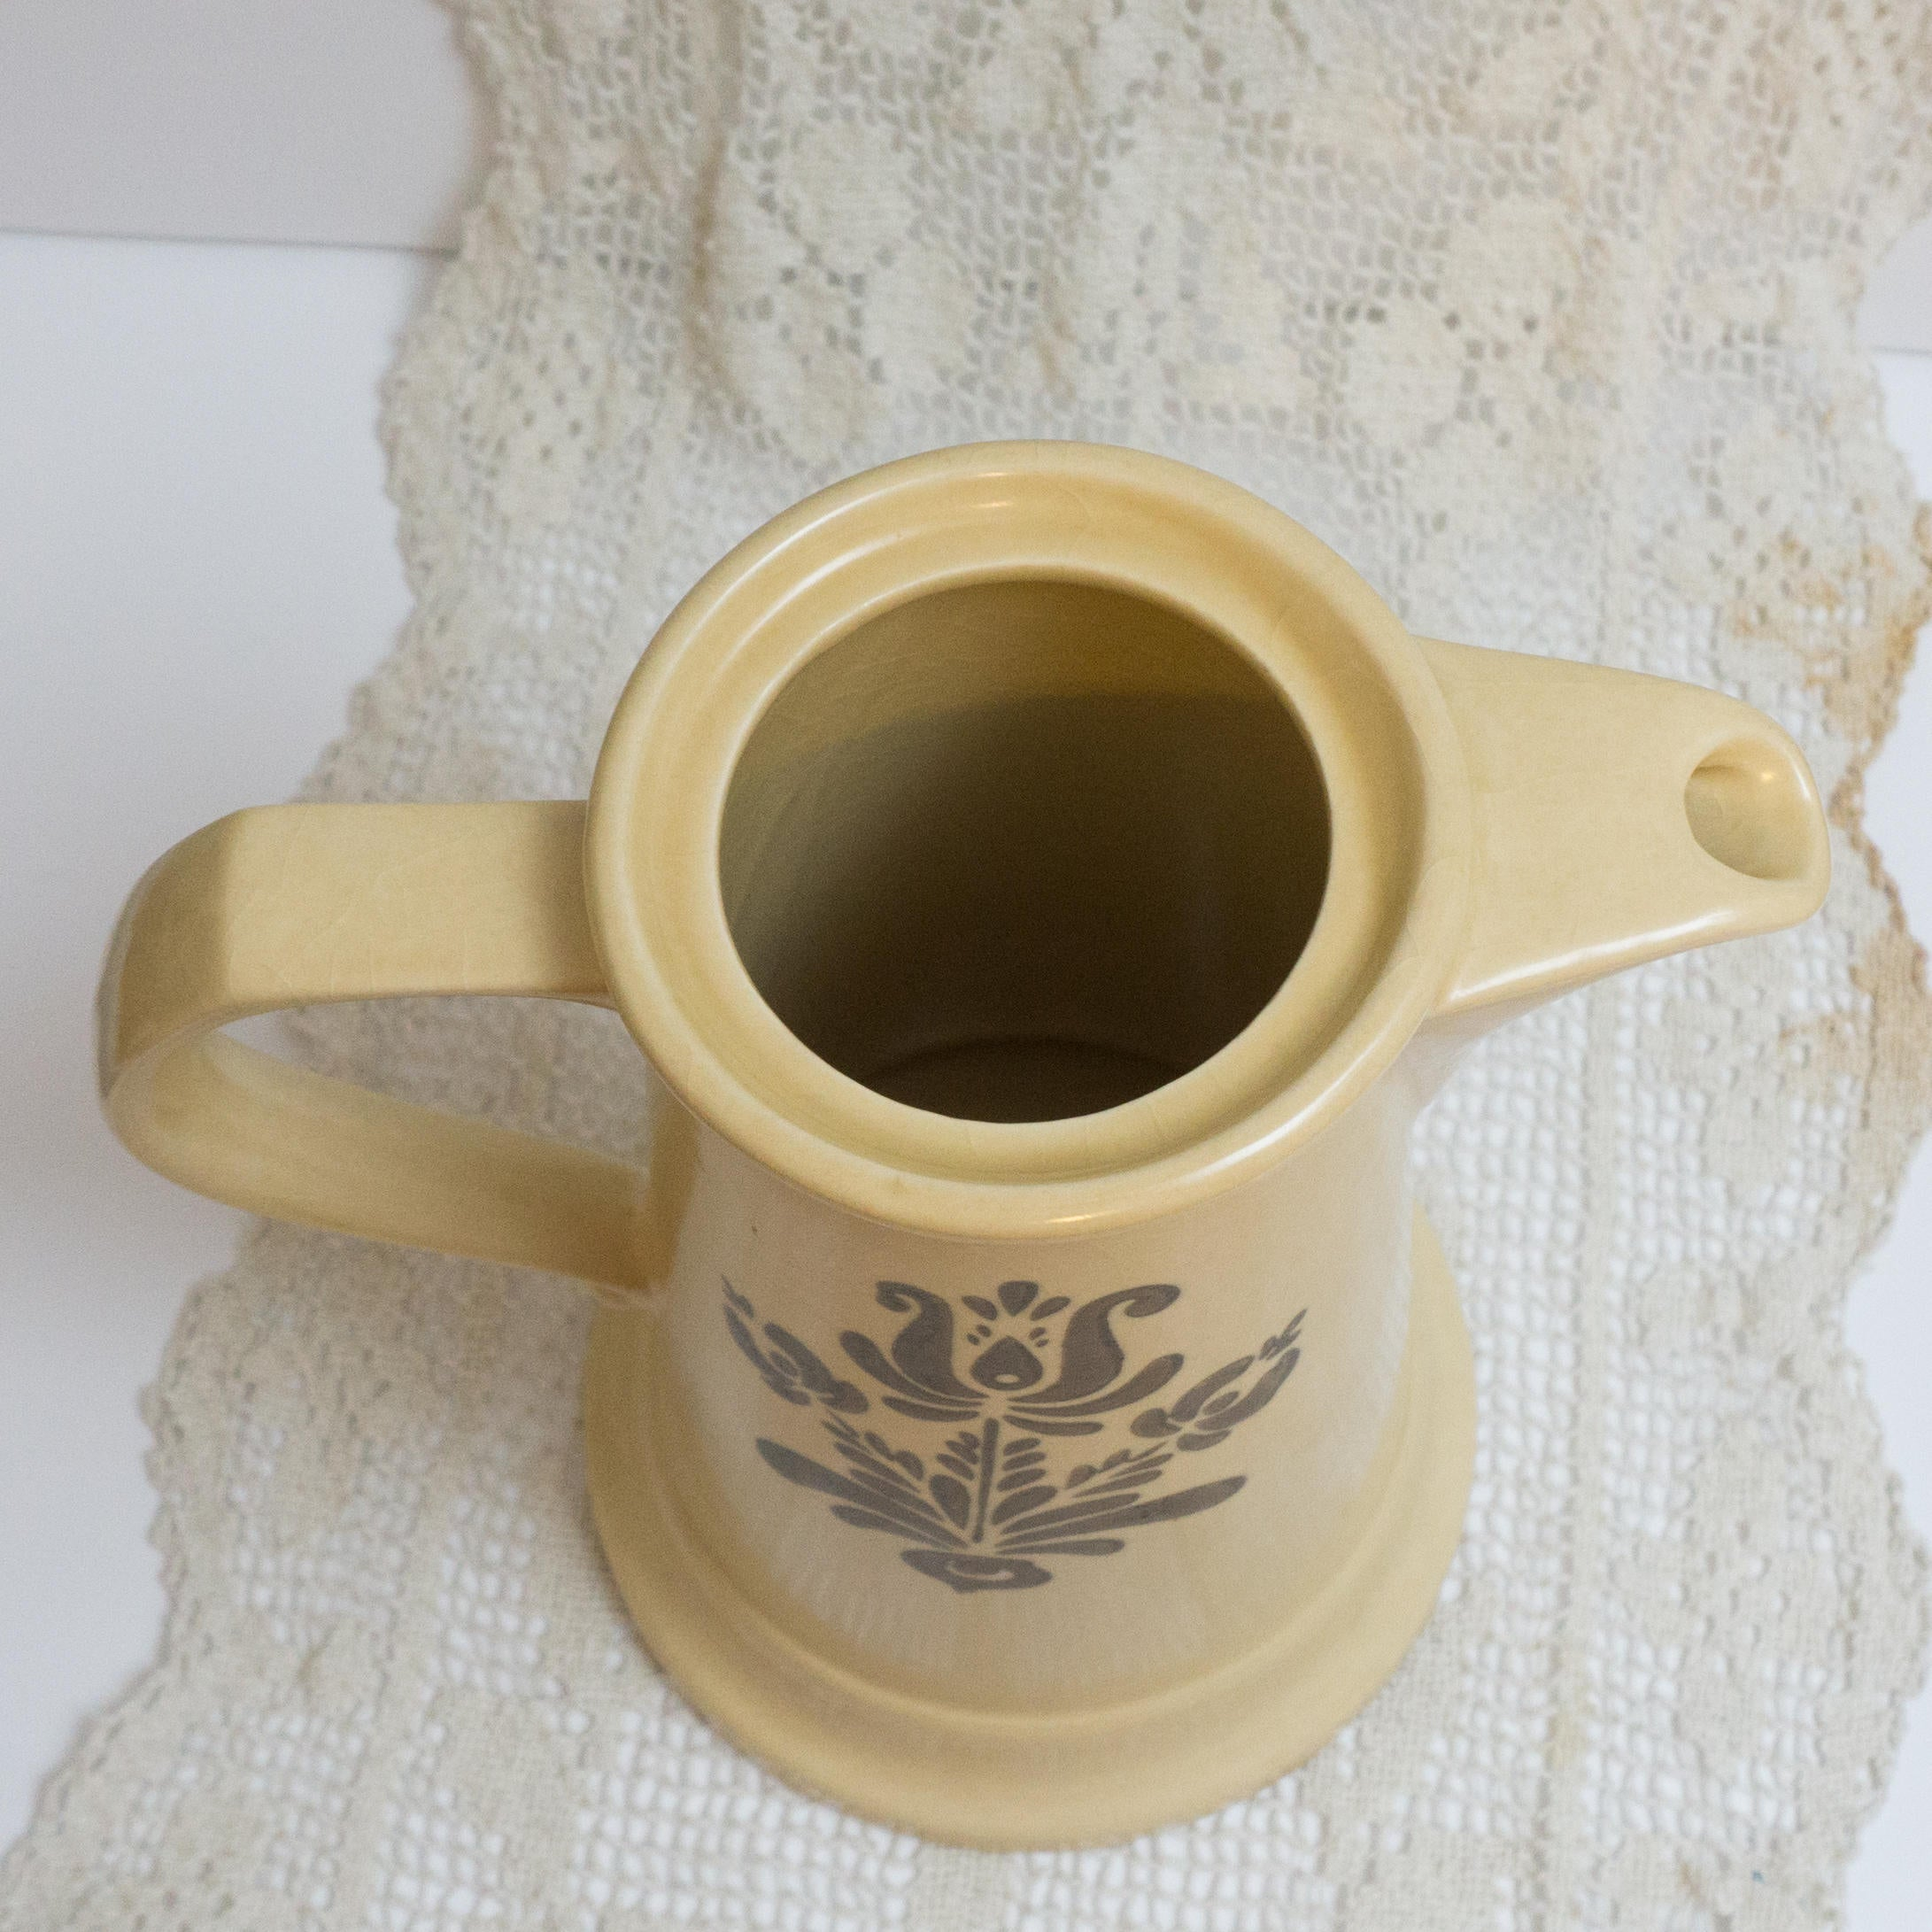 Vintage Coffee Pot in Village (Made in USA) by Pfaltzgraff  NO LID  S-490